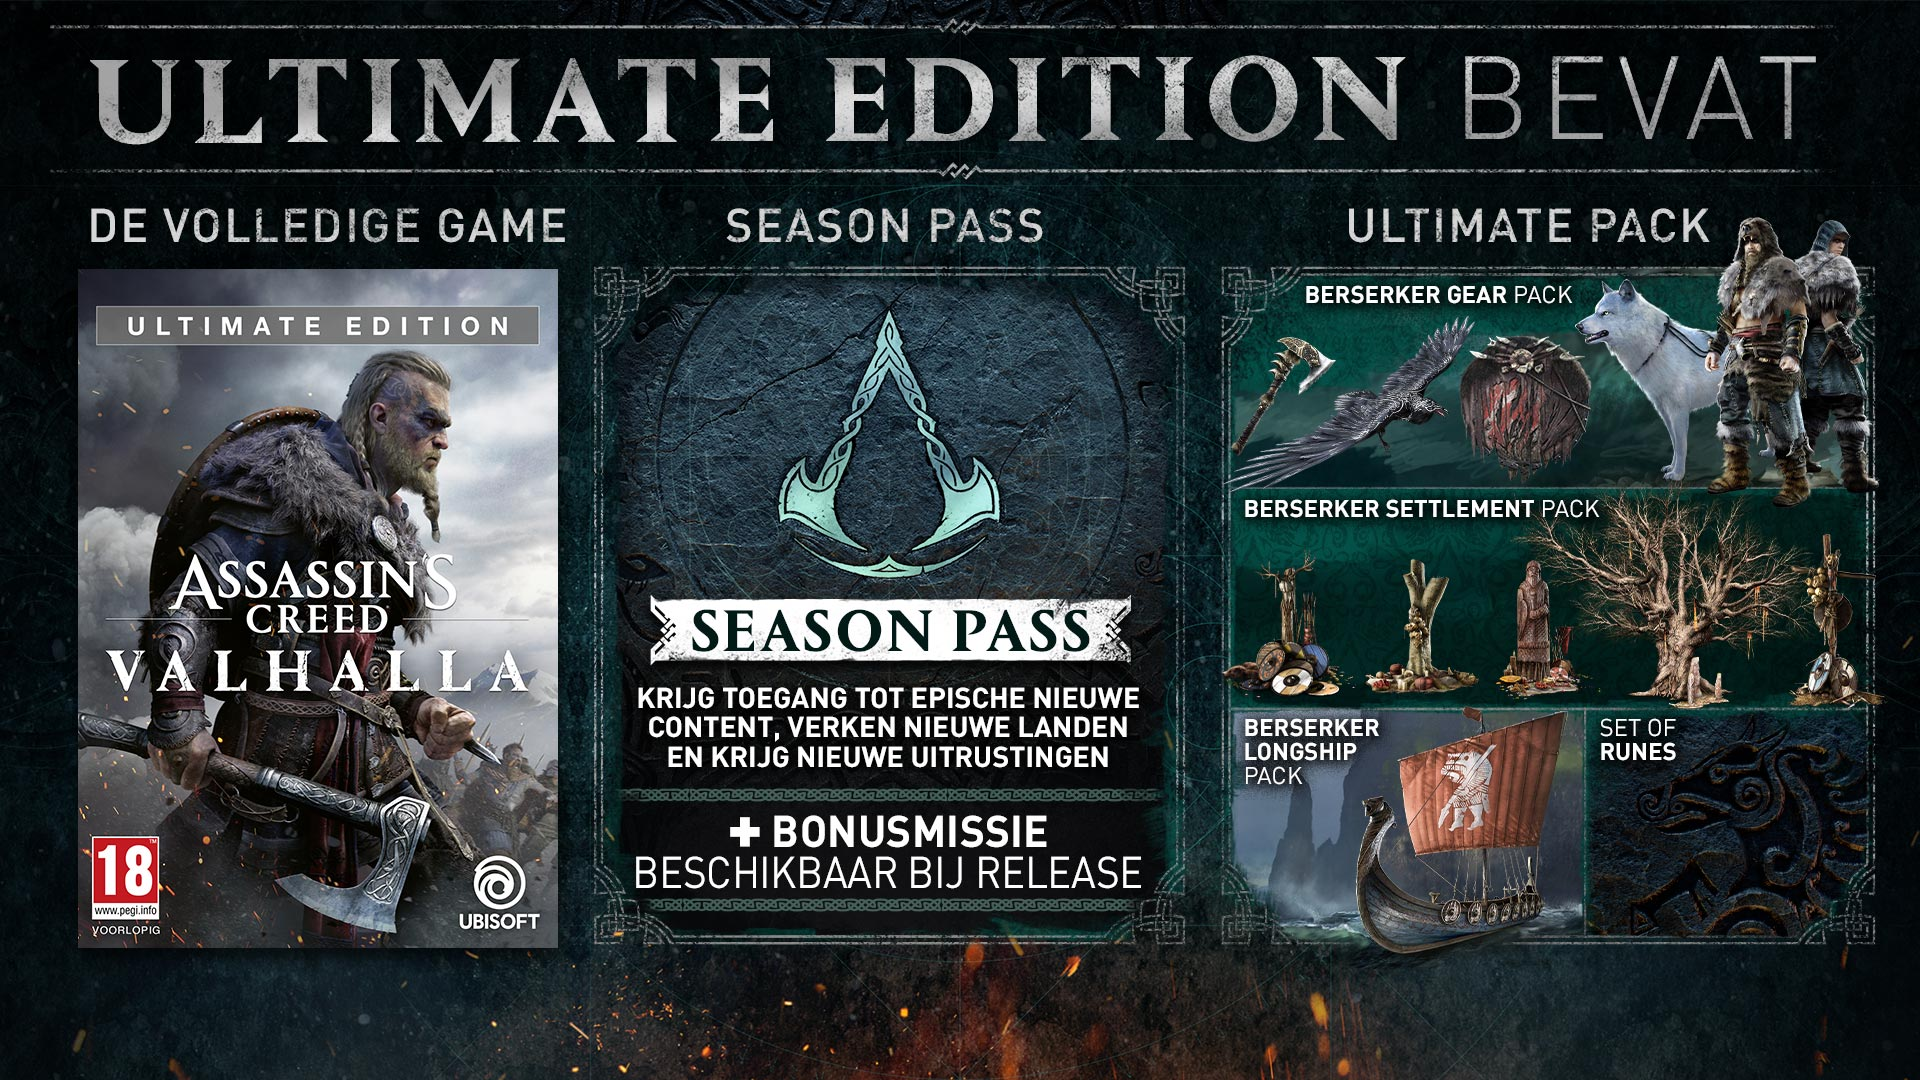 Content of the Ultimate edition